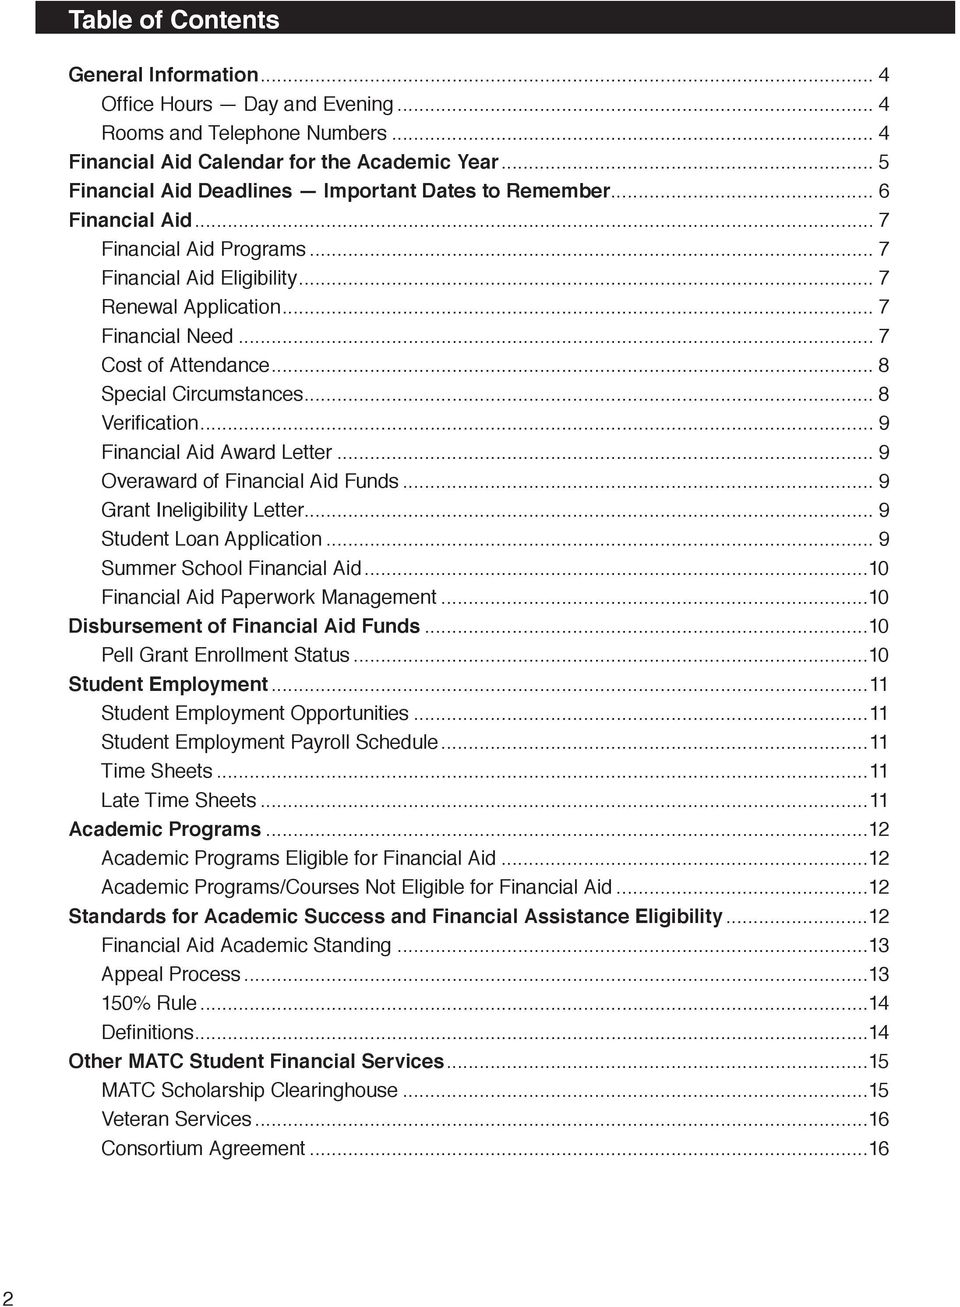 special circumstances financial aid letter example financial aid handbook pdf 24936 | page 2